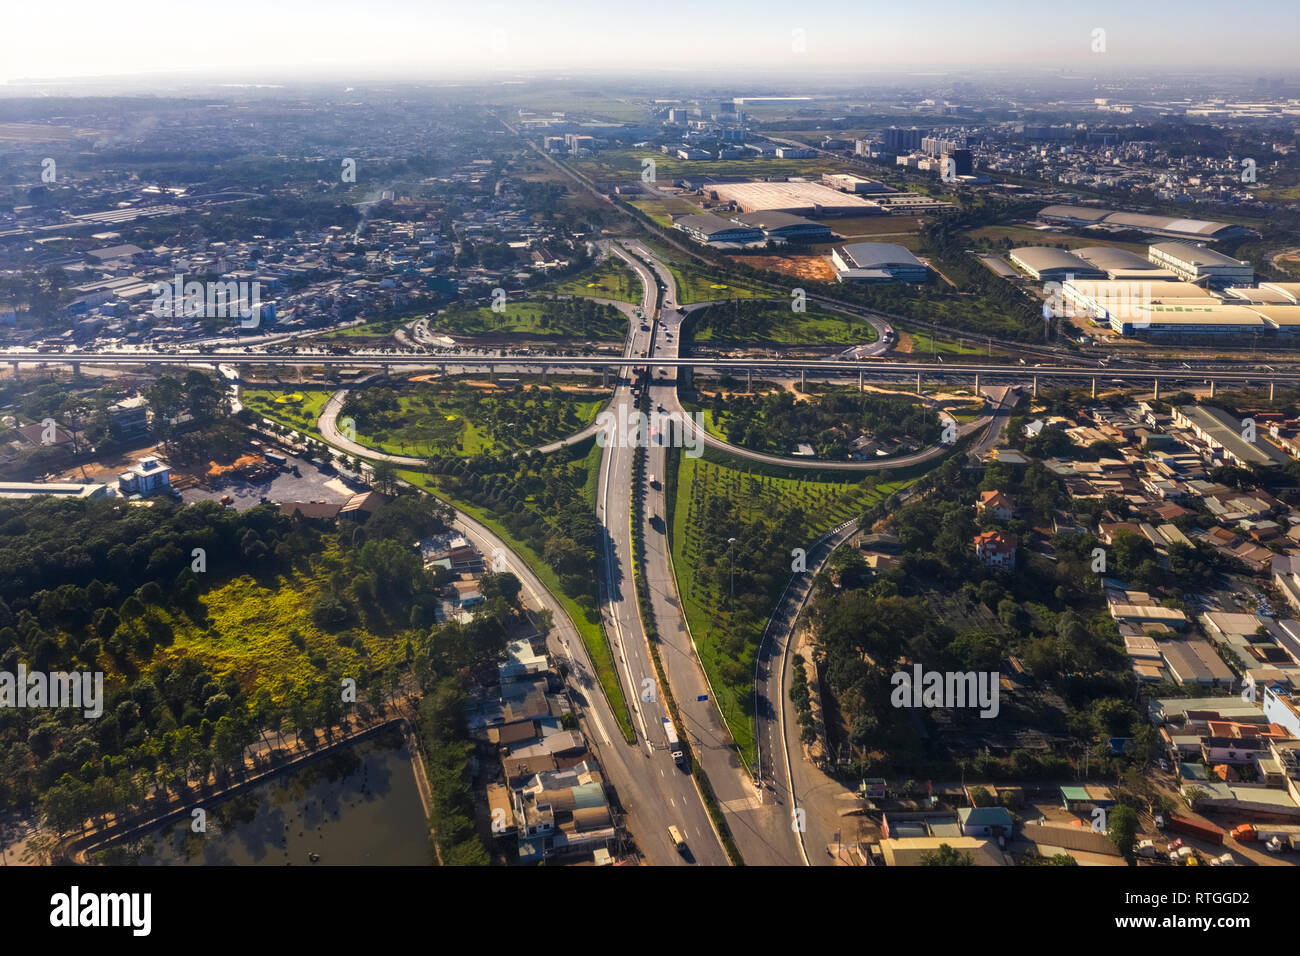 Top view aerial of ' Tram 2 ' overpass, intersection of 1A national road with Hanoi highway. Ho Chi Minh City, Vietnam. View from Dong Nai to 9 - Stock Image